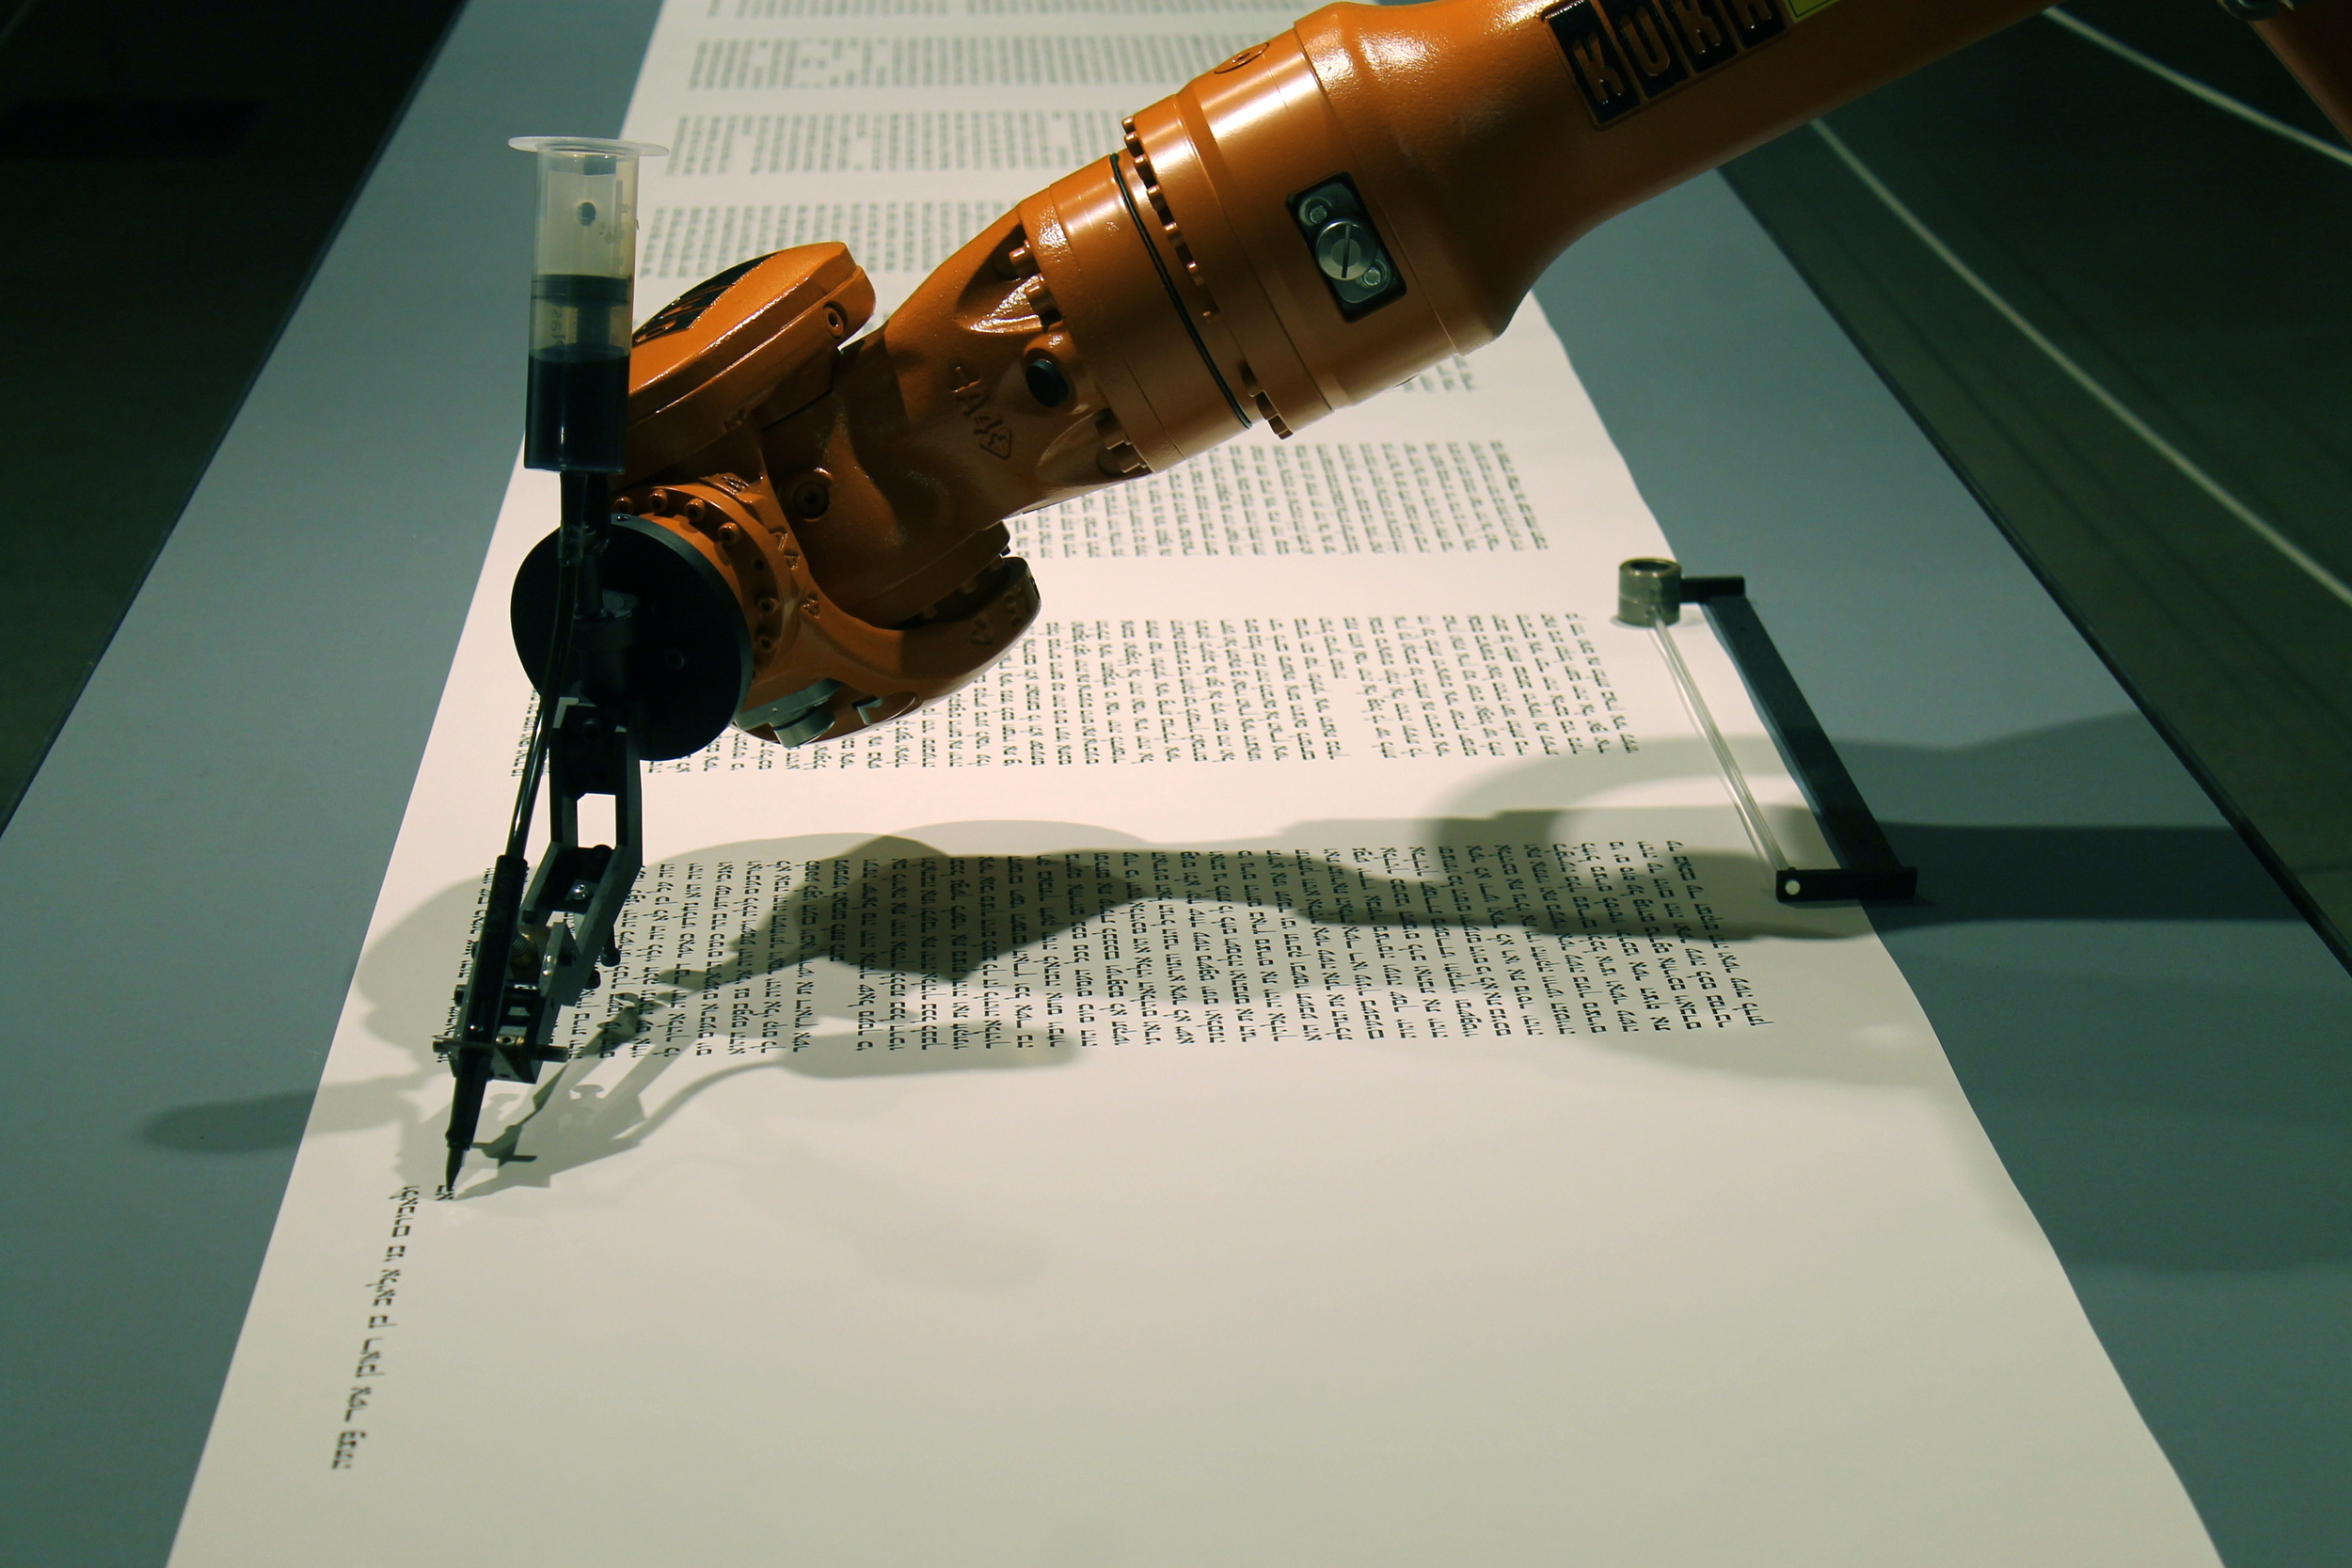 """This installation examinedthe industrial reproducibility of the torah as well asthe relationship between man and machine. Titled """"bios [torah]"""", it illustrated how the bios system (that all computers are built upon) is as""""fundamental to the development of the machine as the Scriptures are the cultural history of mankind""""."""